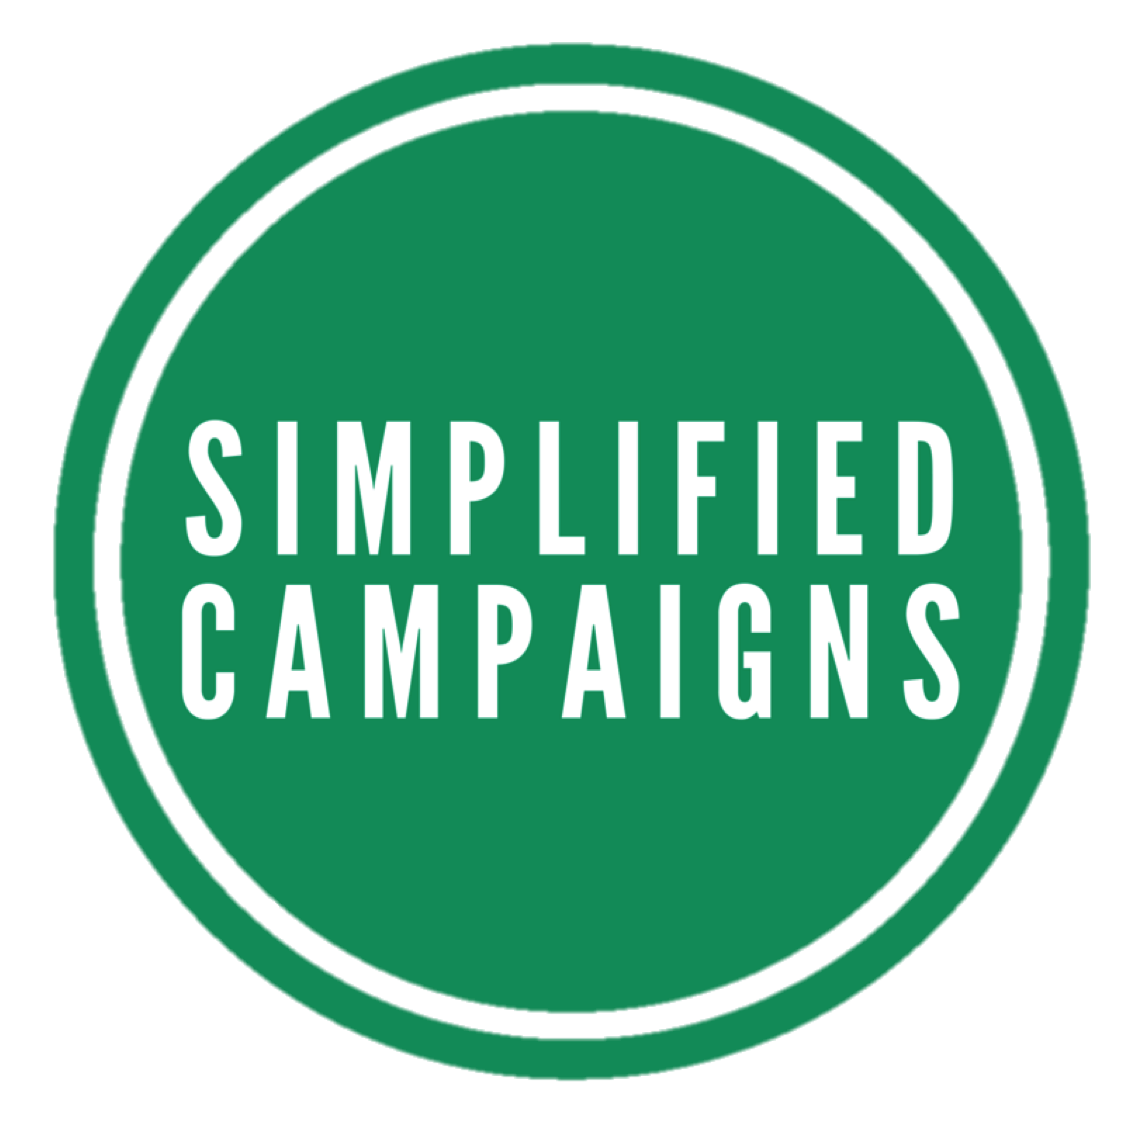 Simplified Campaigns